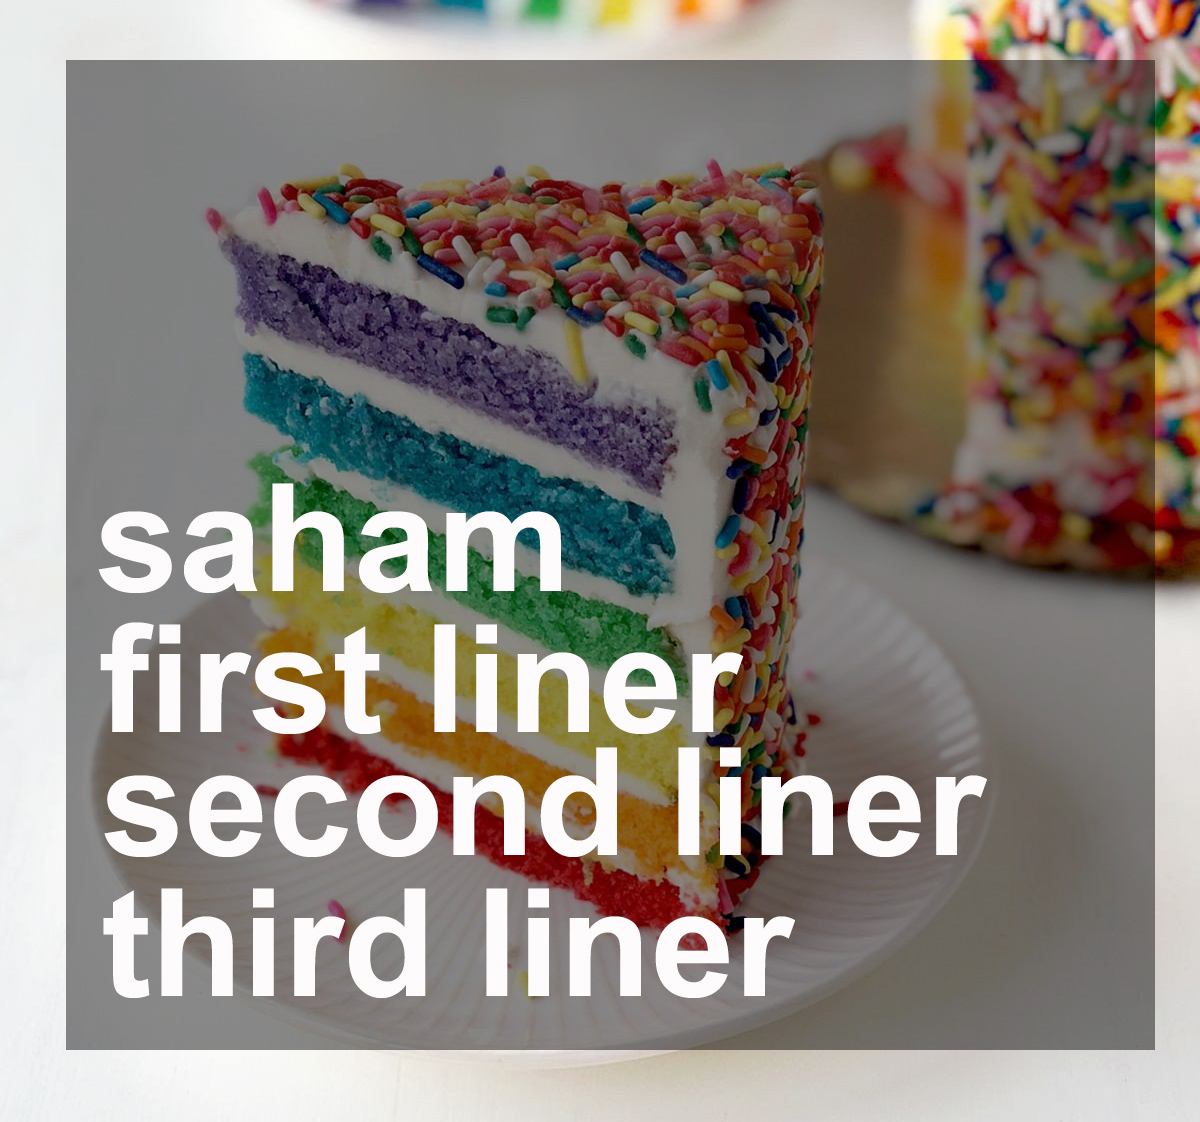 Mengenal saham First Liner, Second Liner dan Third Liner